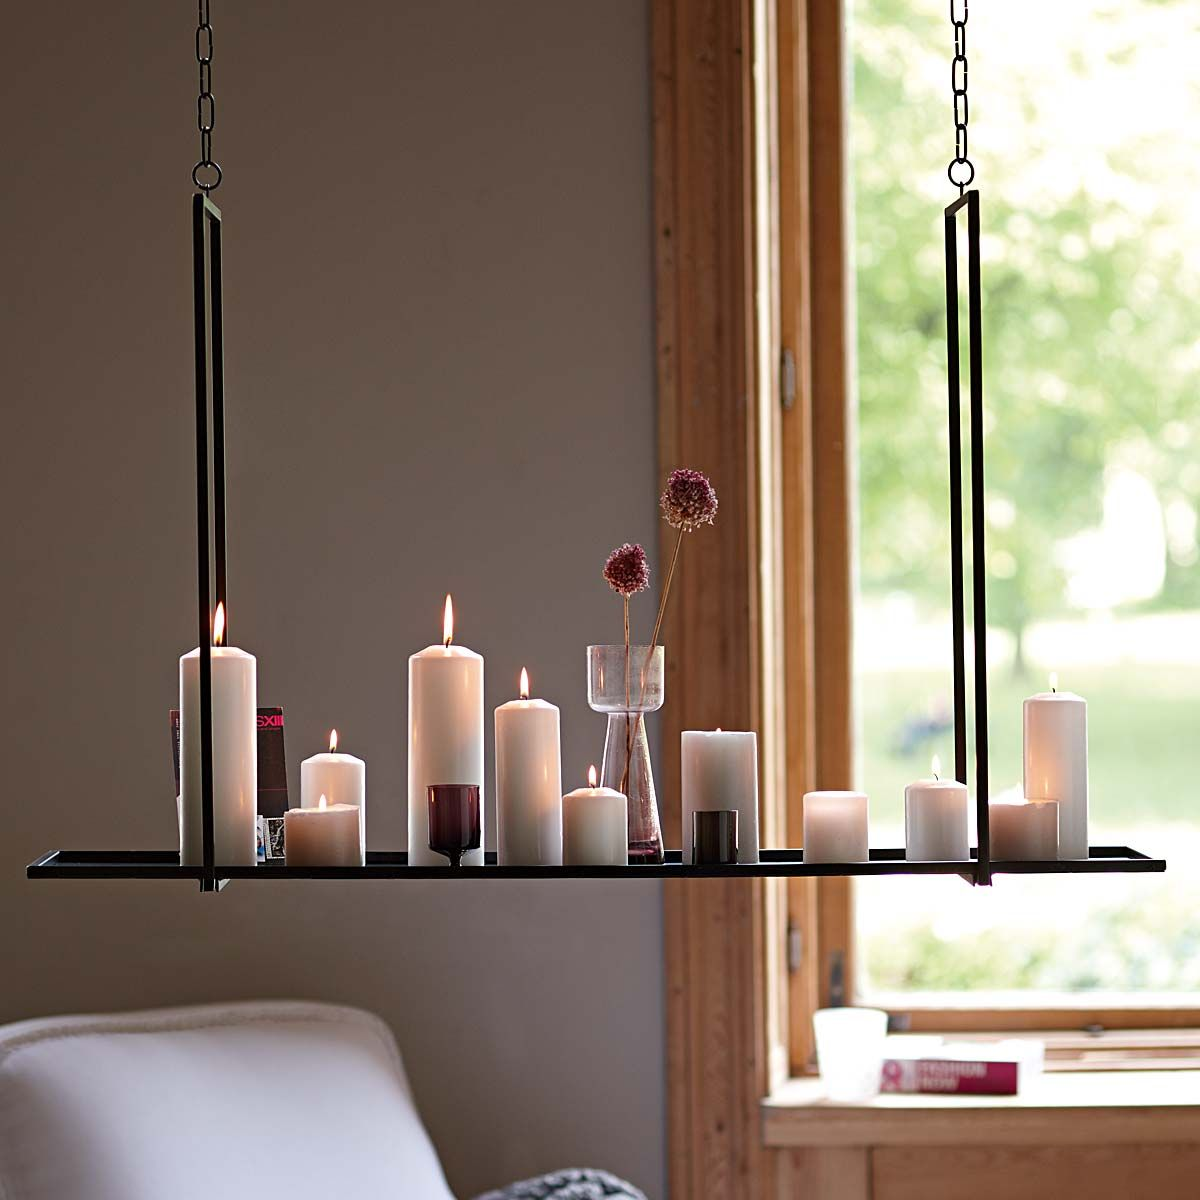 h ngende kerzen hanging candles impressionen moebel. Black Bedroom Furniture Sets. Home Design Ideas